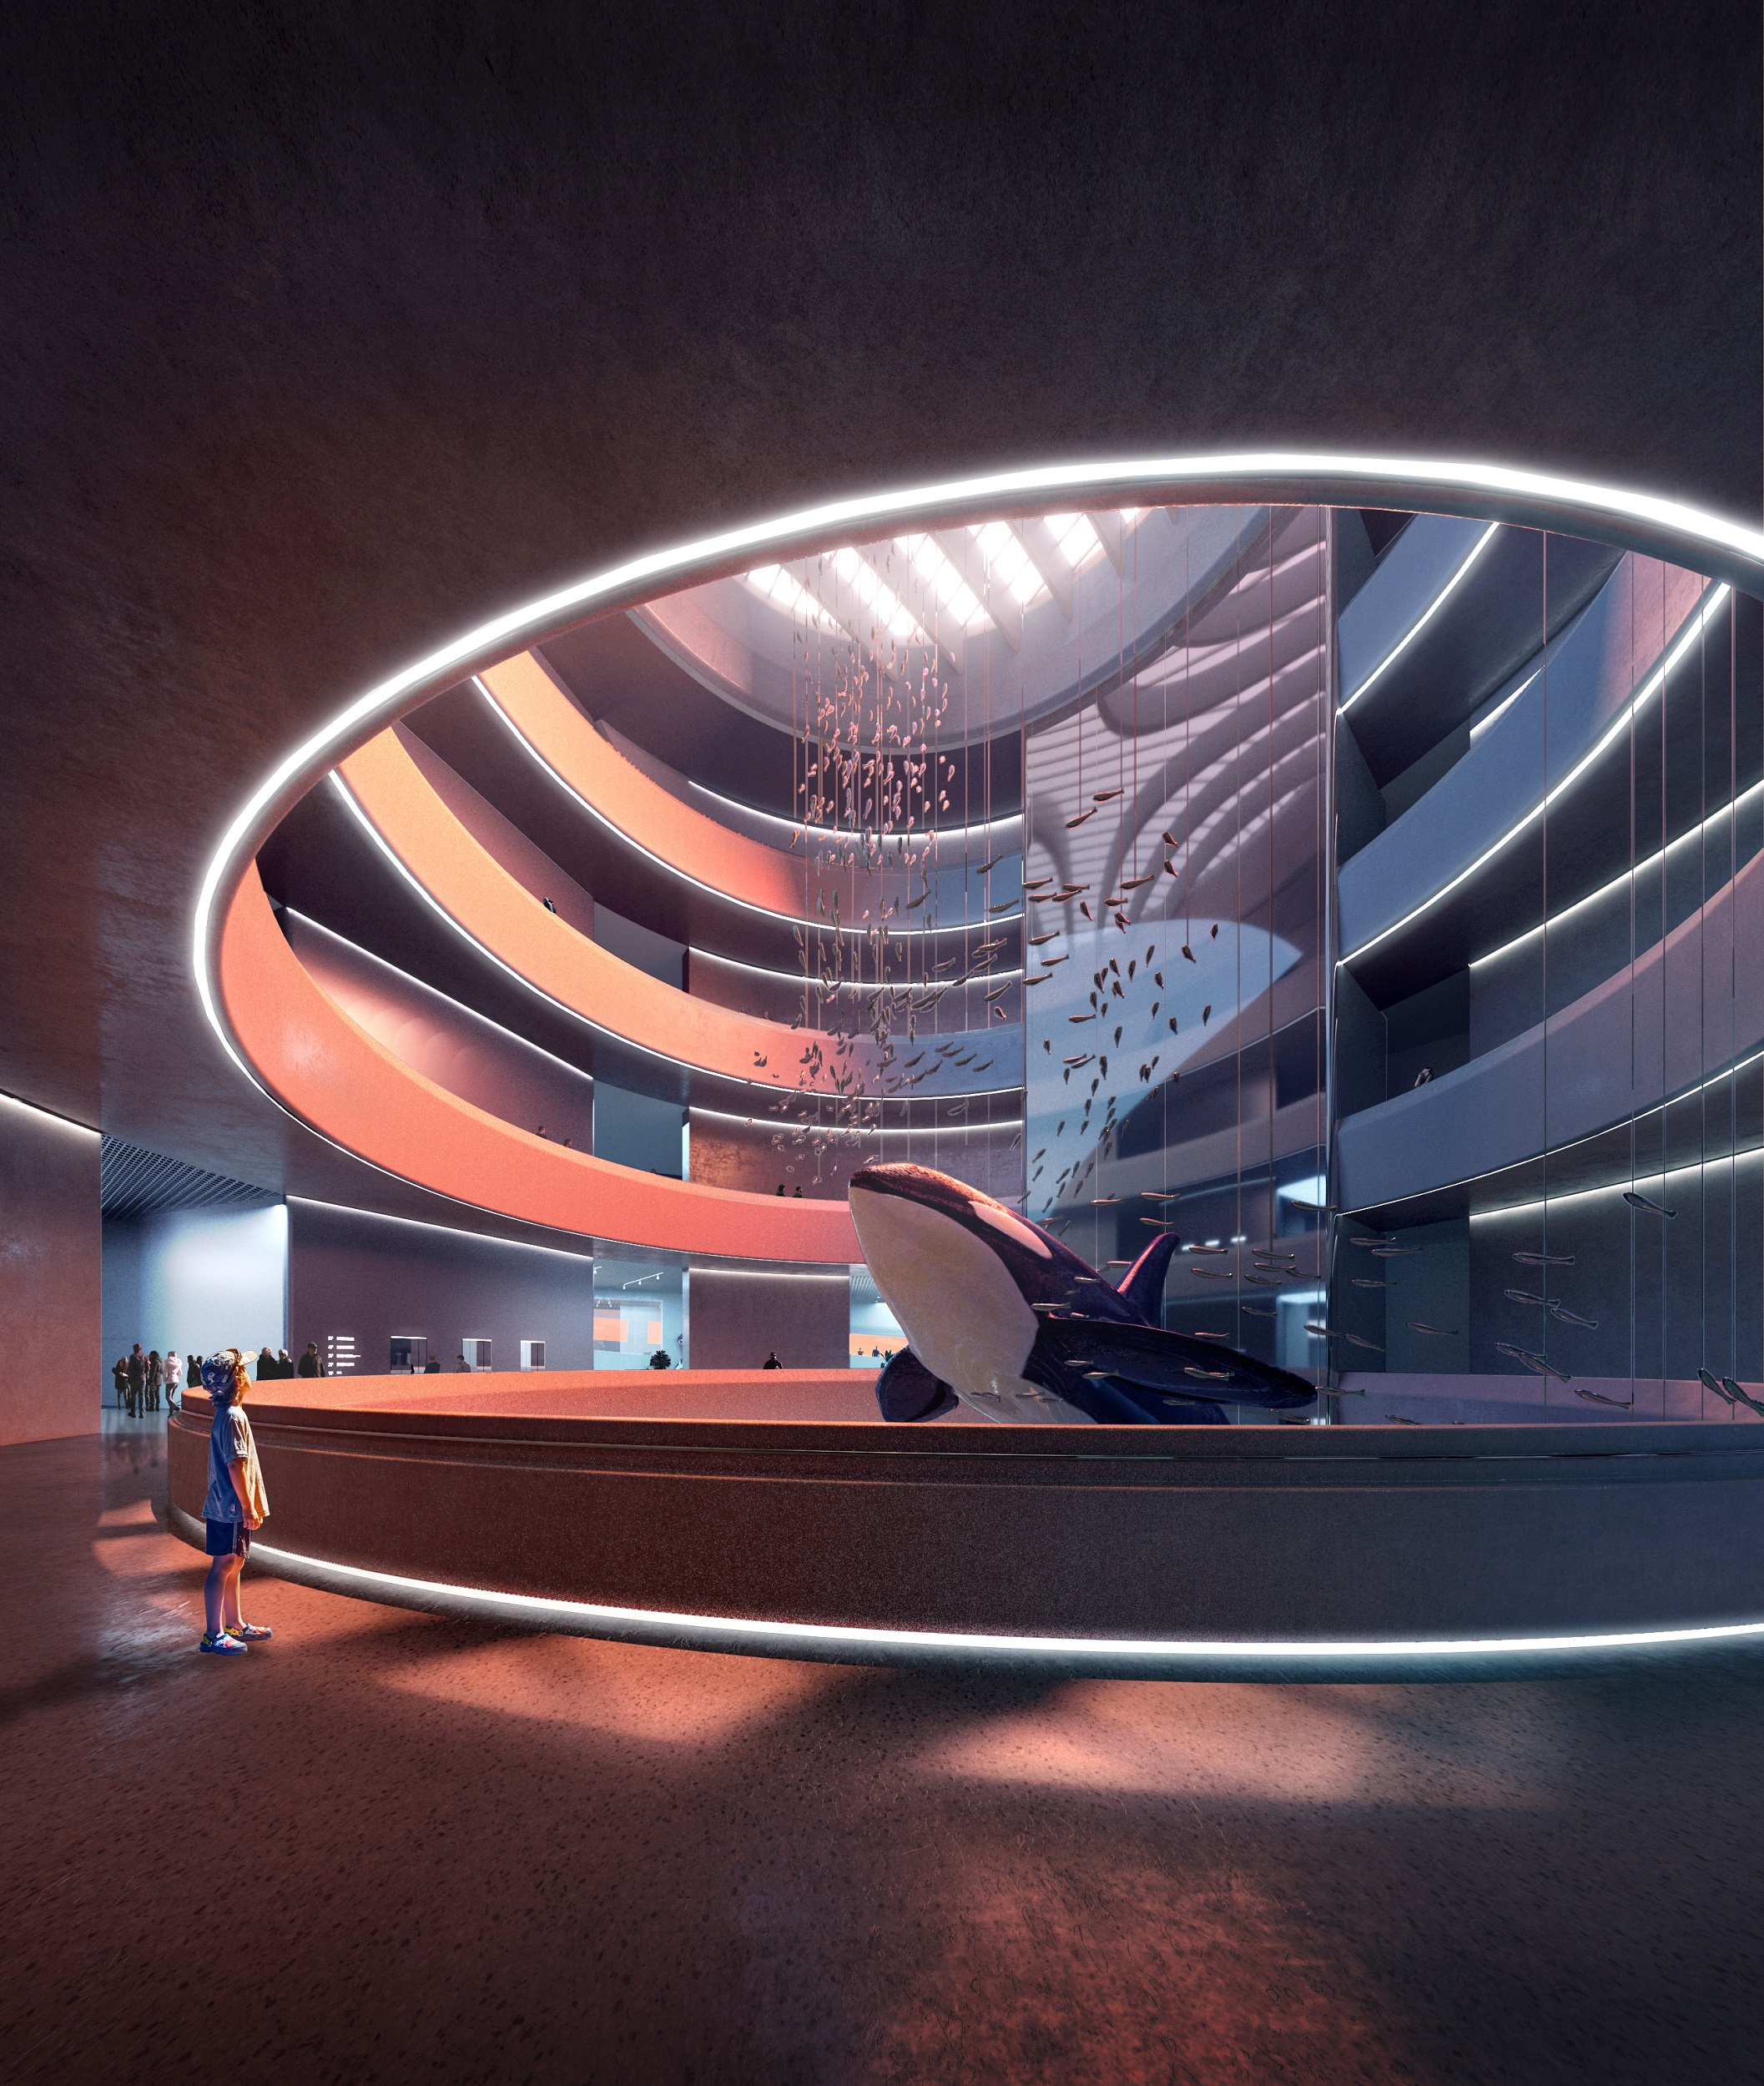 10_MAD_Hainan Science and Technology Museum_interior 1